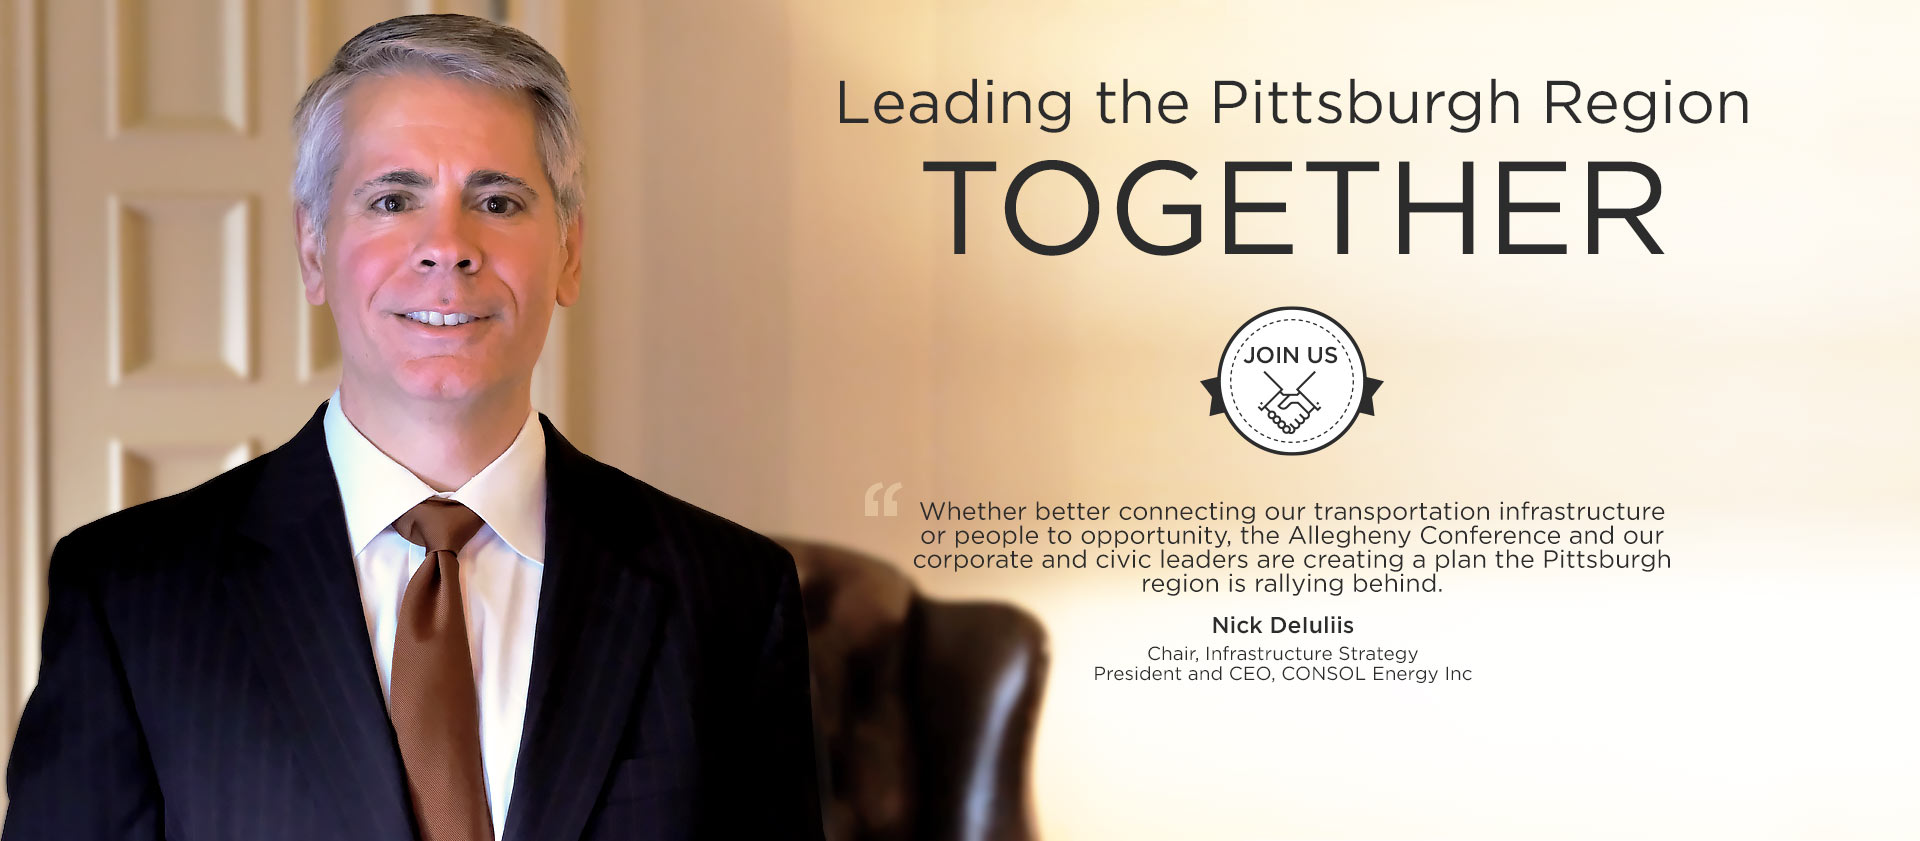 Nicholas DeIuliis - Chair, Infrastructure Strategy - President and CEO, CONSOL Energy Inc.